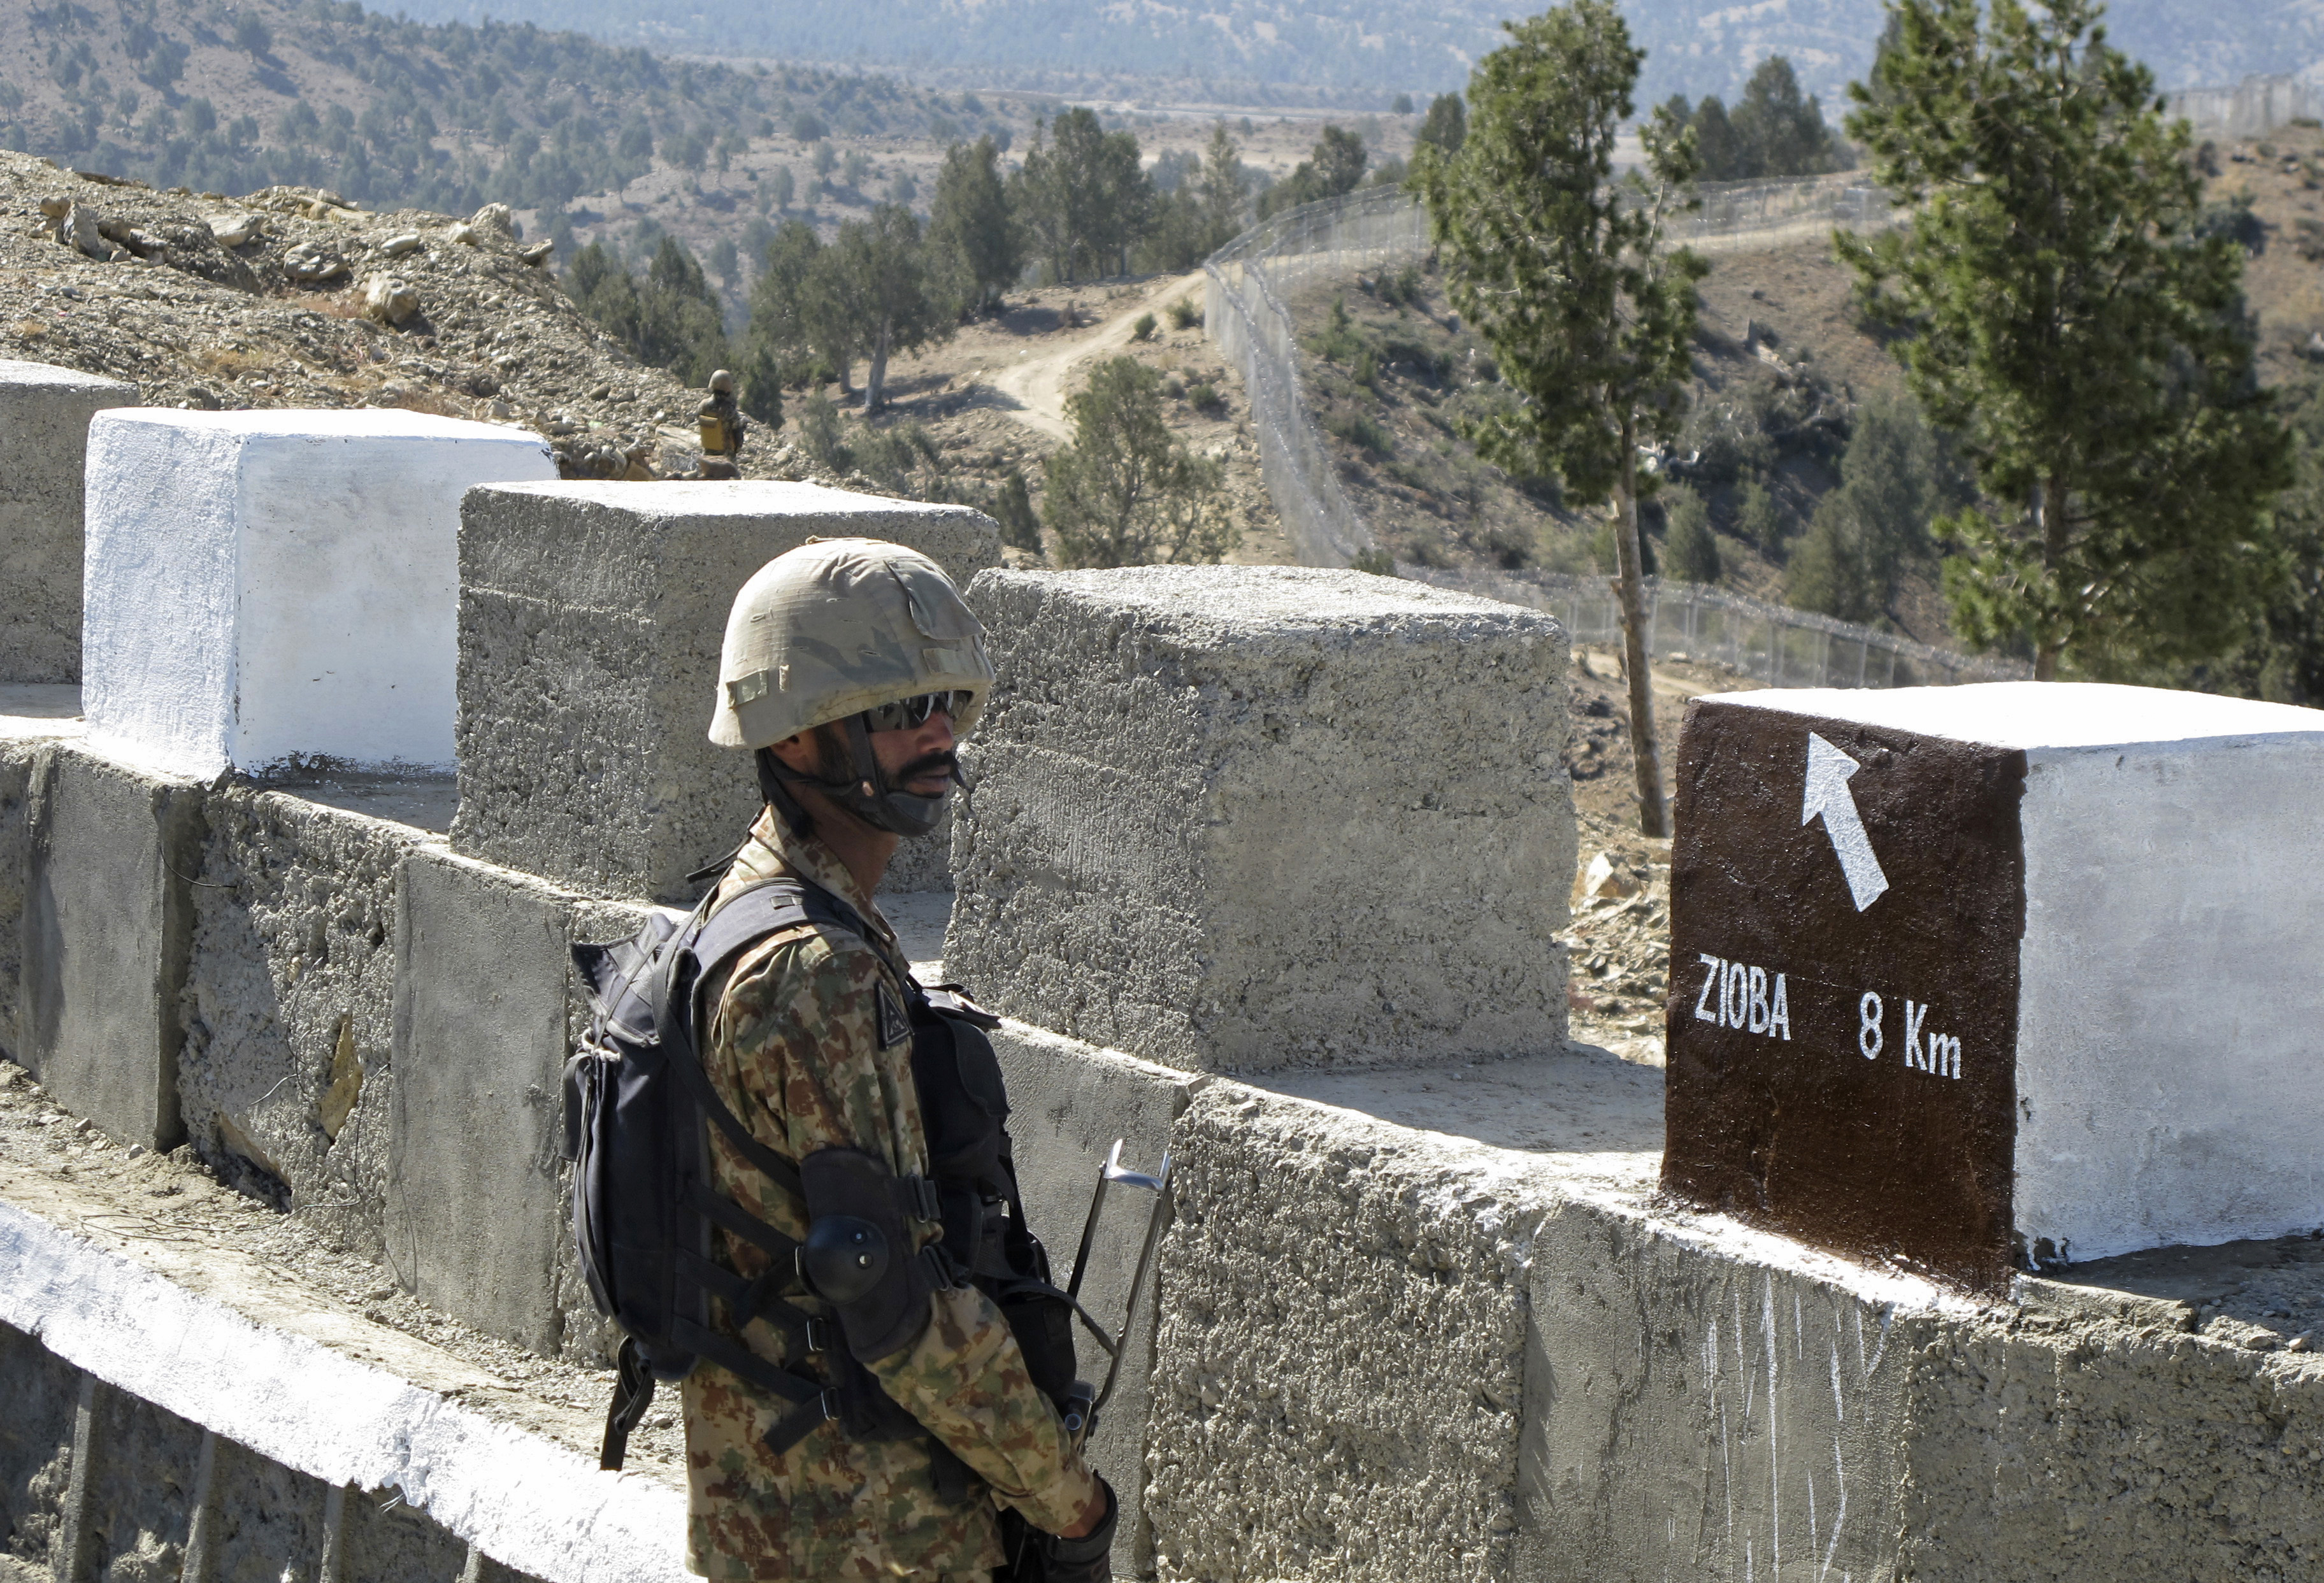 A Pakistani soldier stands guard at a newly erected fence between Pakistan and Afghanistan at Angore Adda, Pakistan, Oct. 18, 2017.